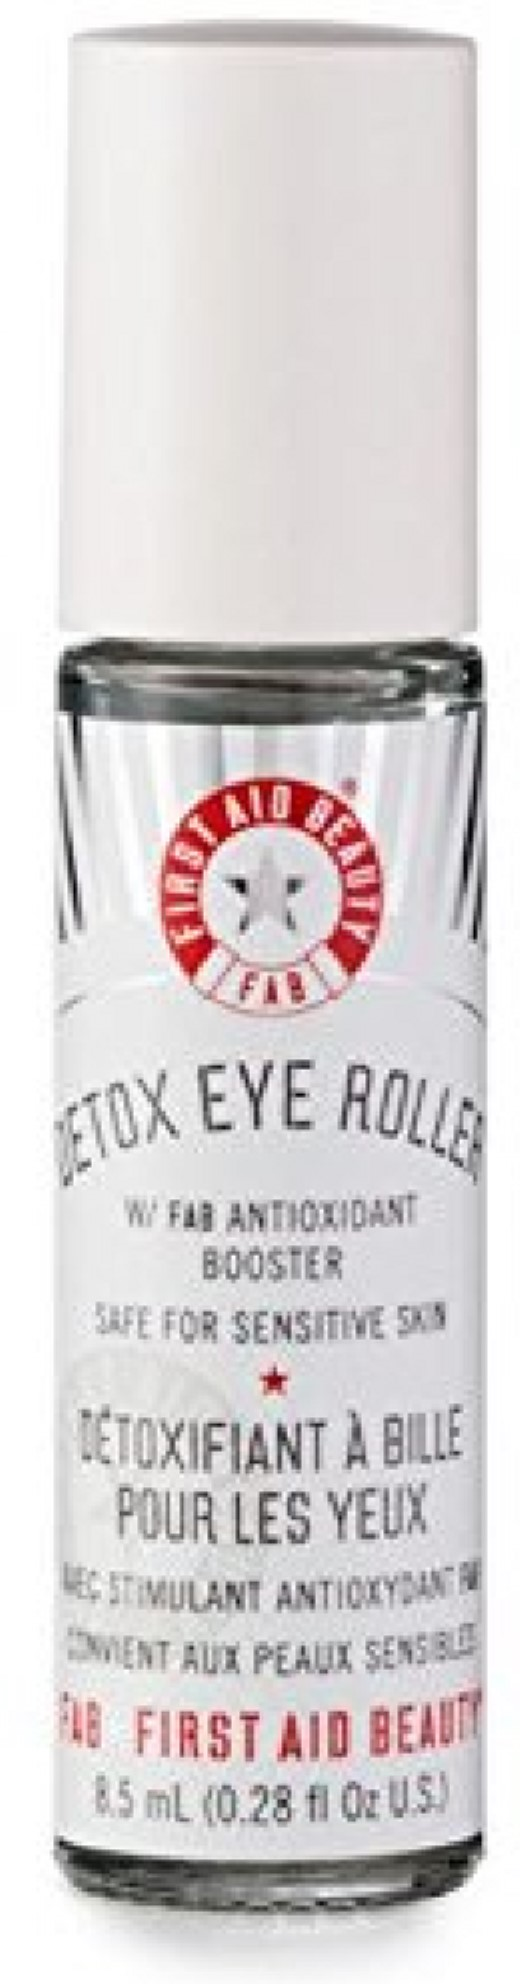 3 Pack - First Aid Beauty Detox Eye Roller 0.28 oz e.l.f. Hydrating Water Cleansing Cloths, 20 count